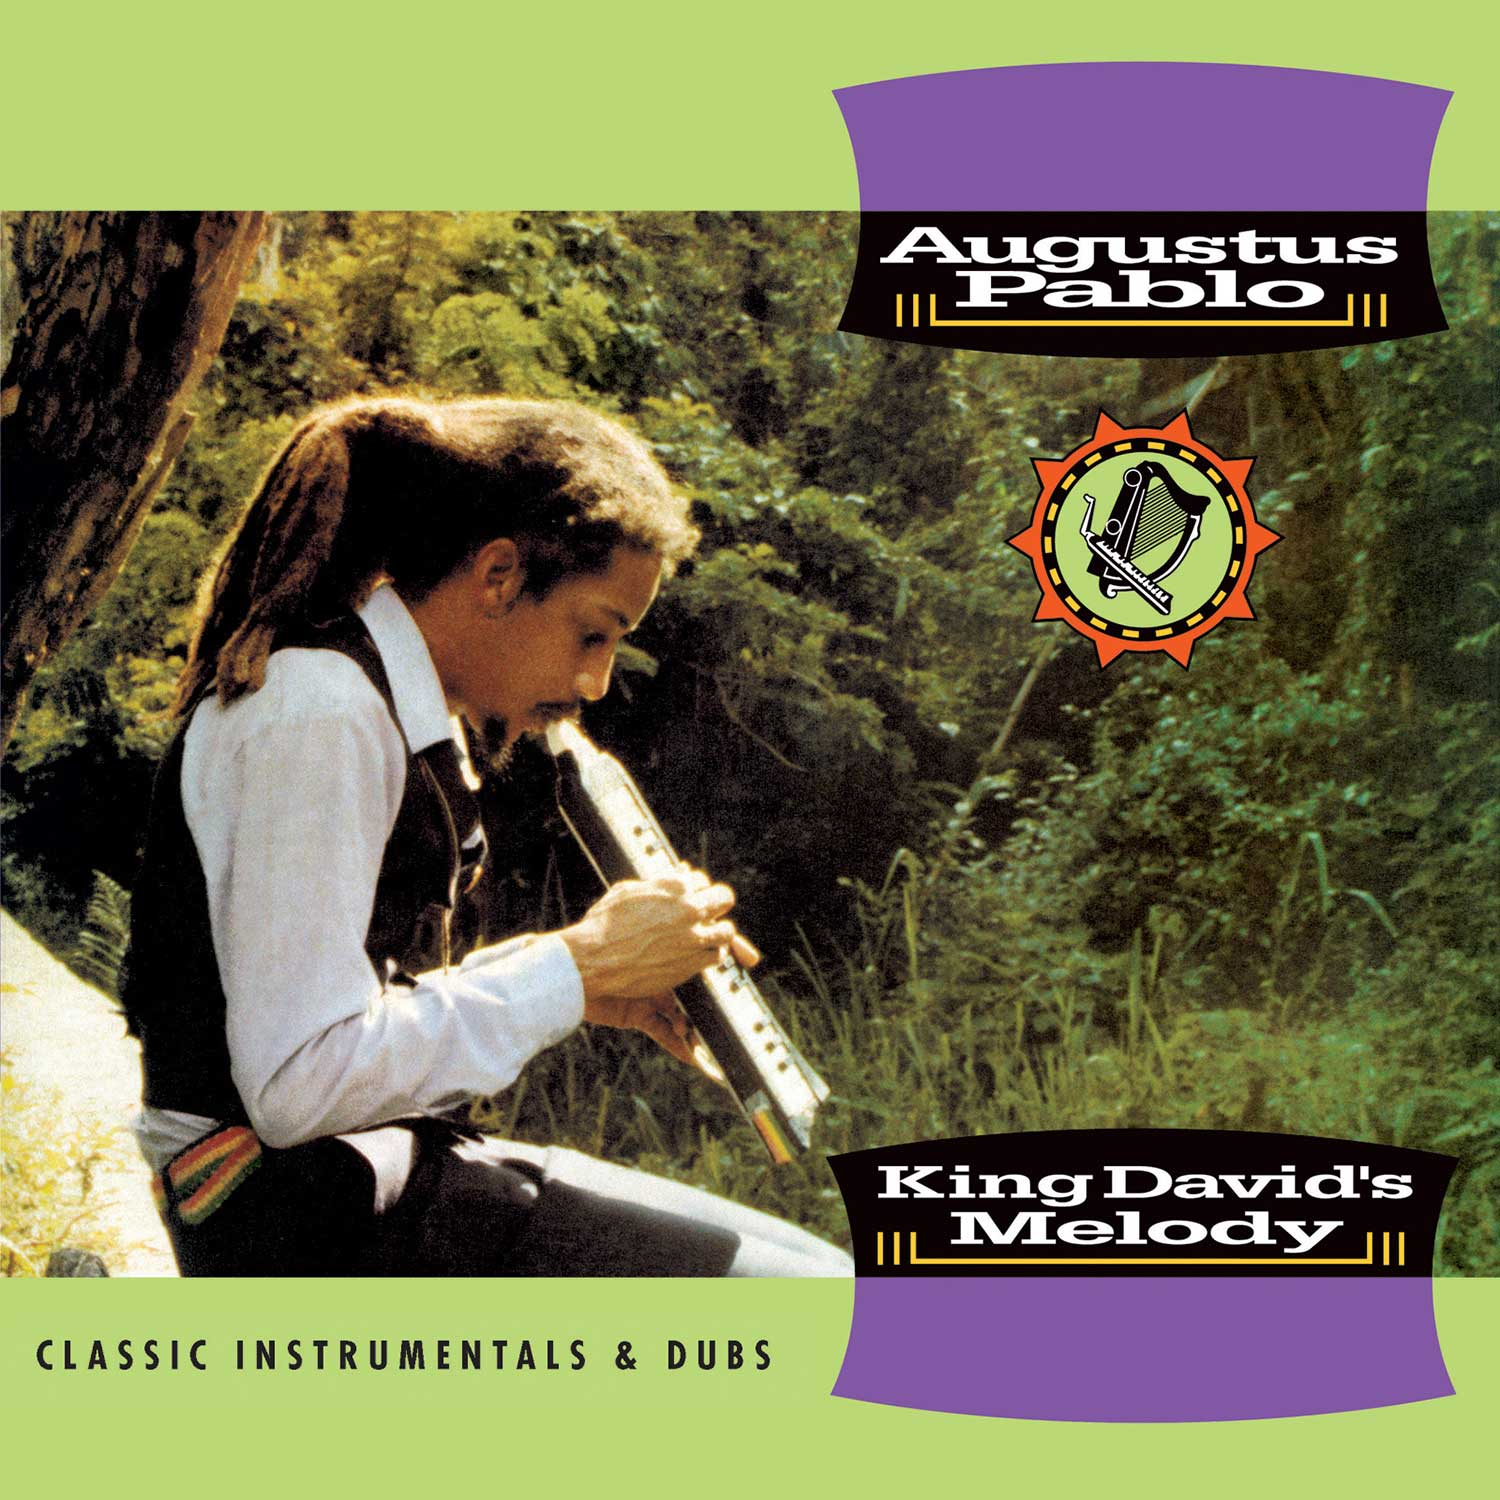 King David's Melody – Classic Instrumentals & Dubs – Augustus Pablo